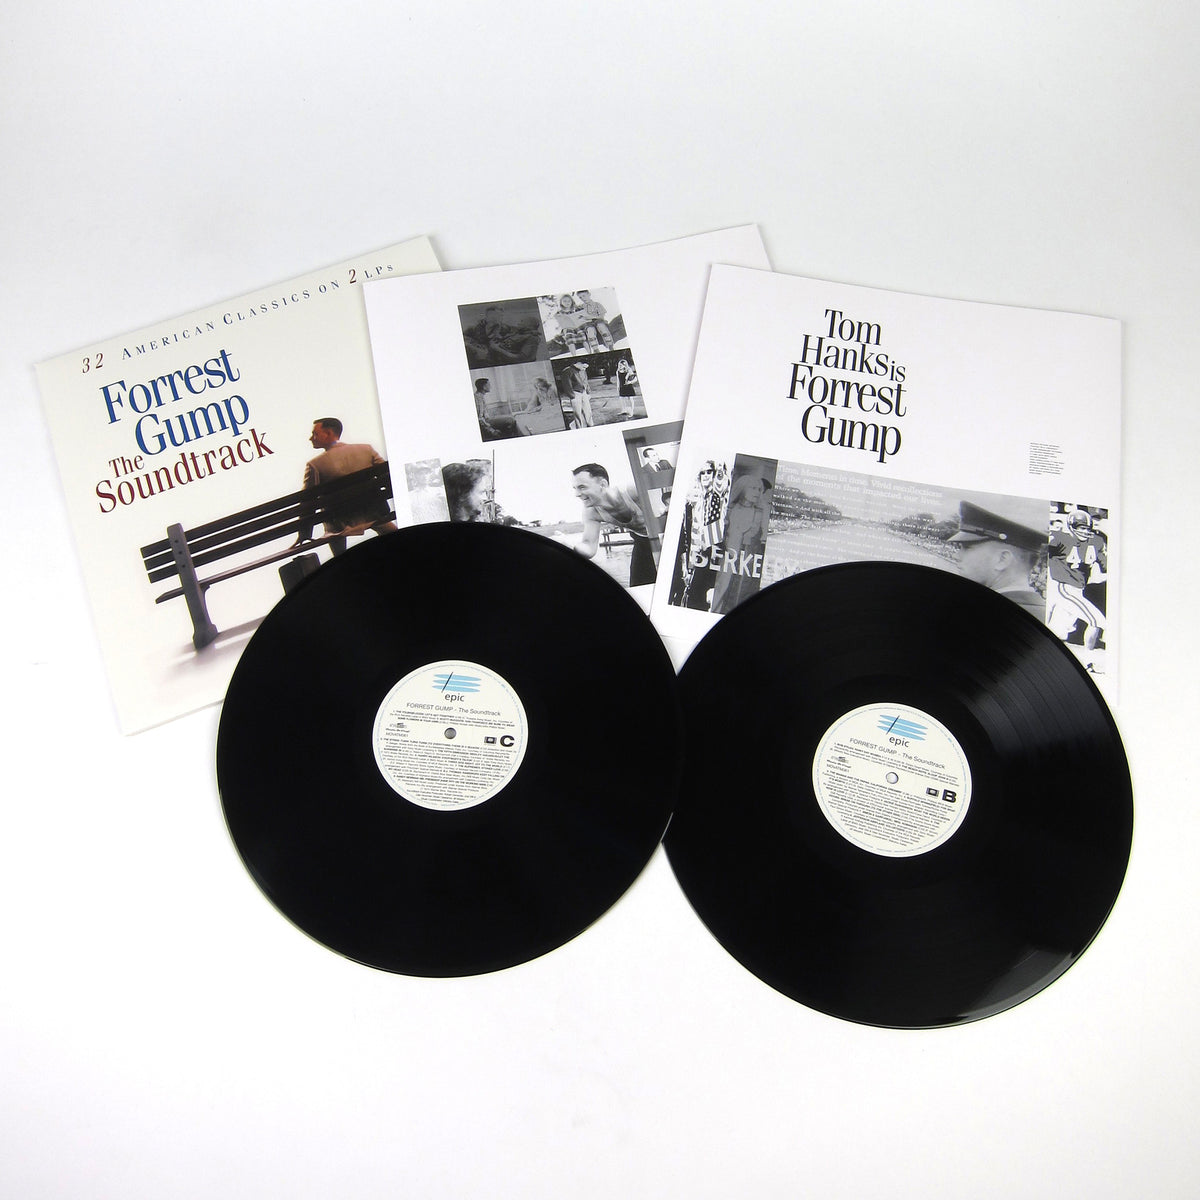 Forrest Gump: The Soundtrack (Music On Vinyl 180g) Vinyl 2LP layout